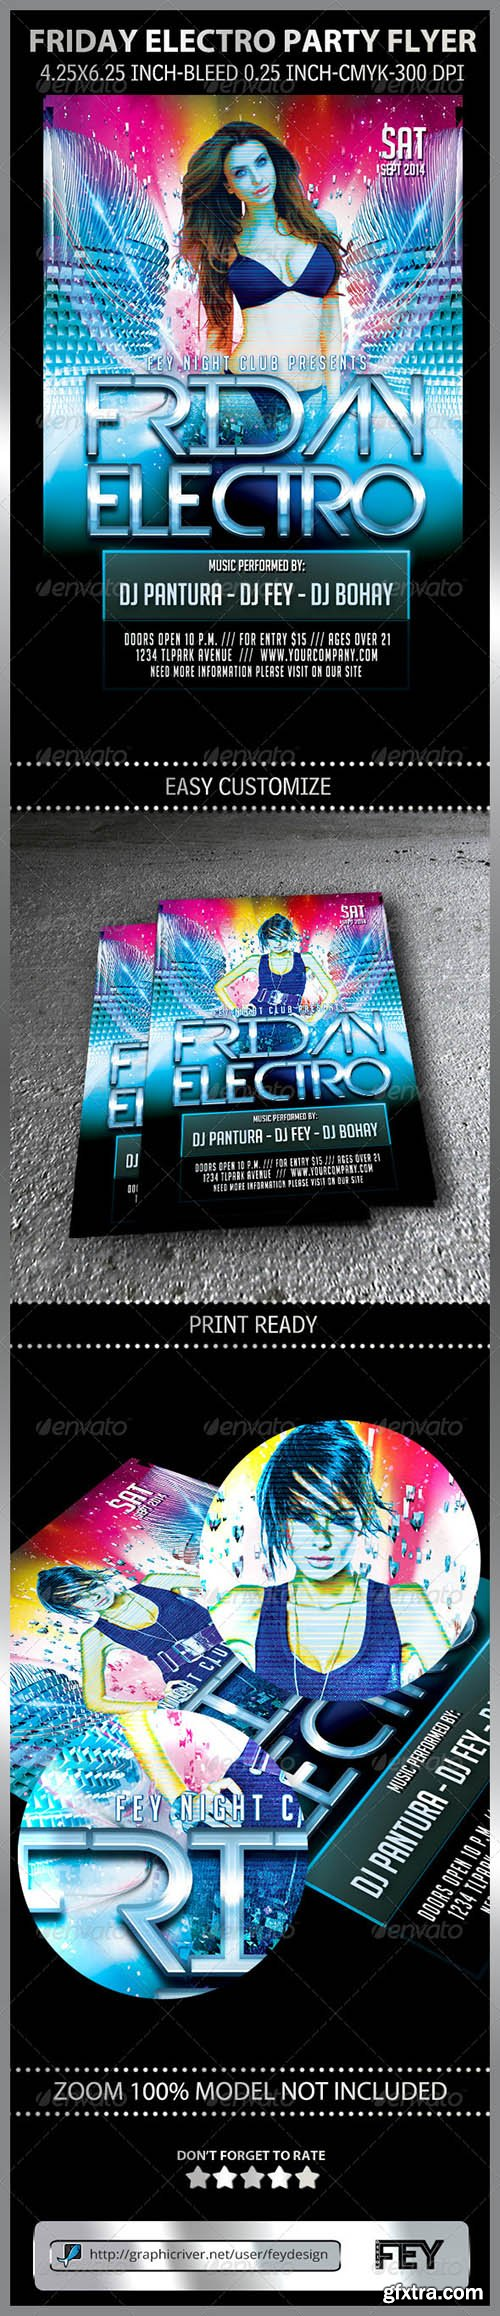 Graphicriver Friday Electro Party Flyer 8598113